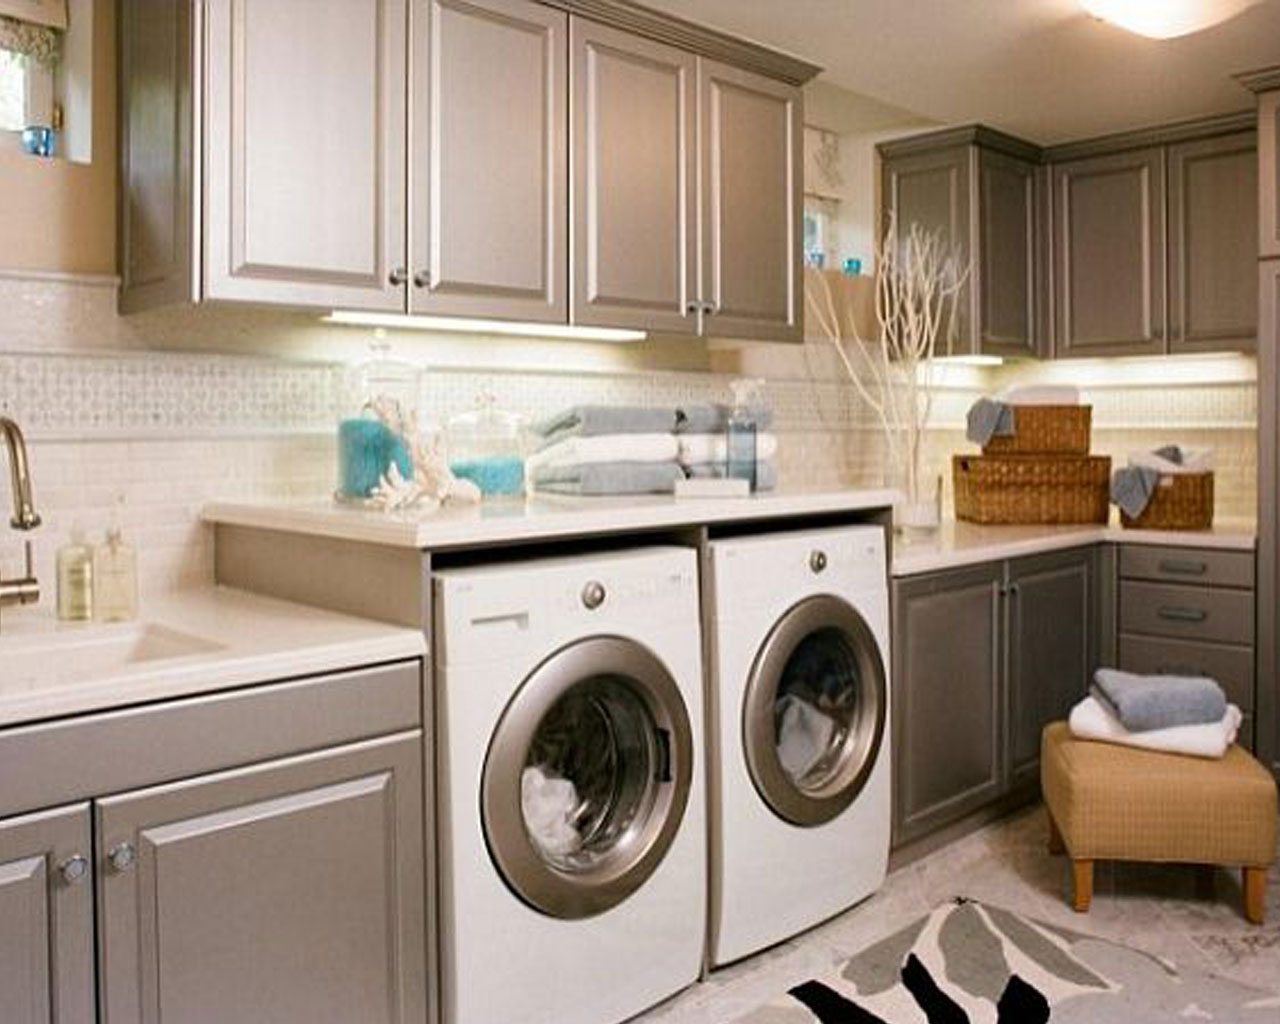 Laundry room design ideas smj construction